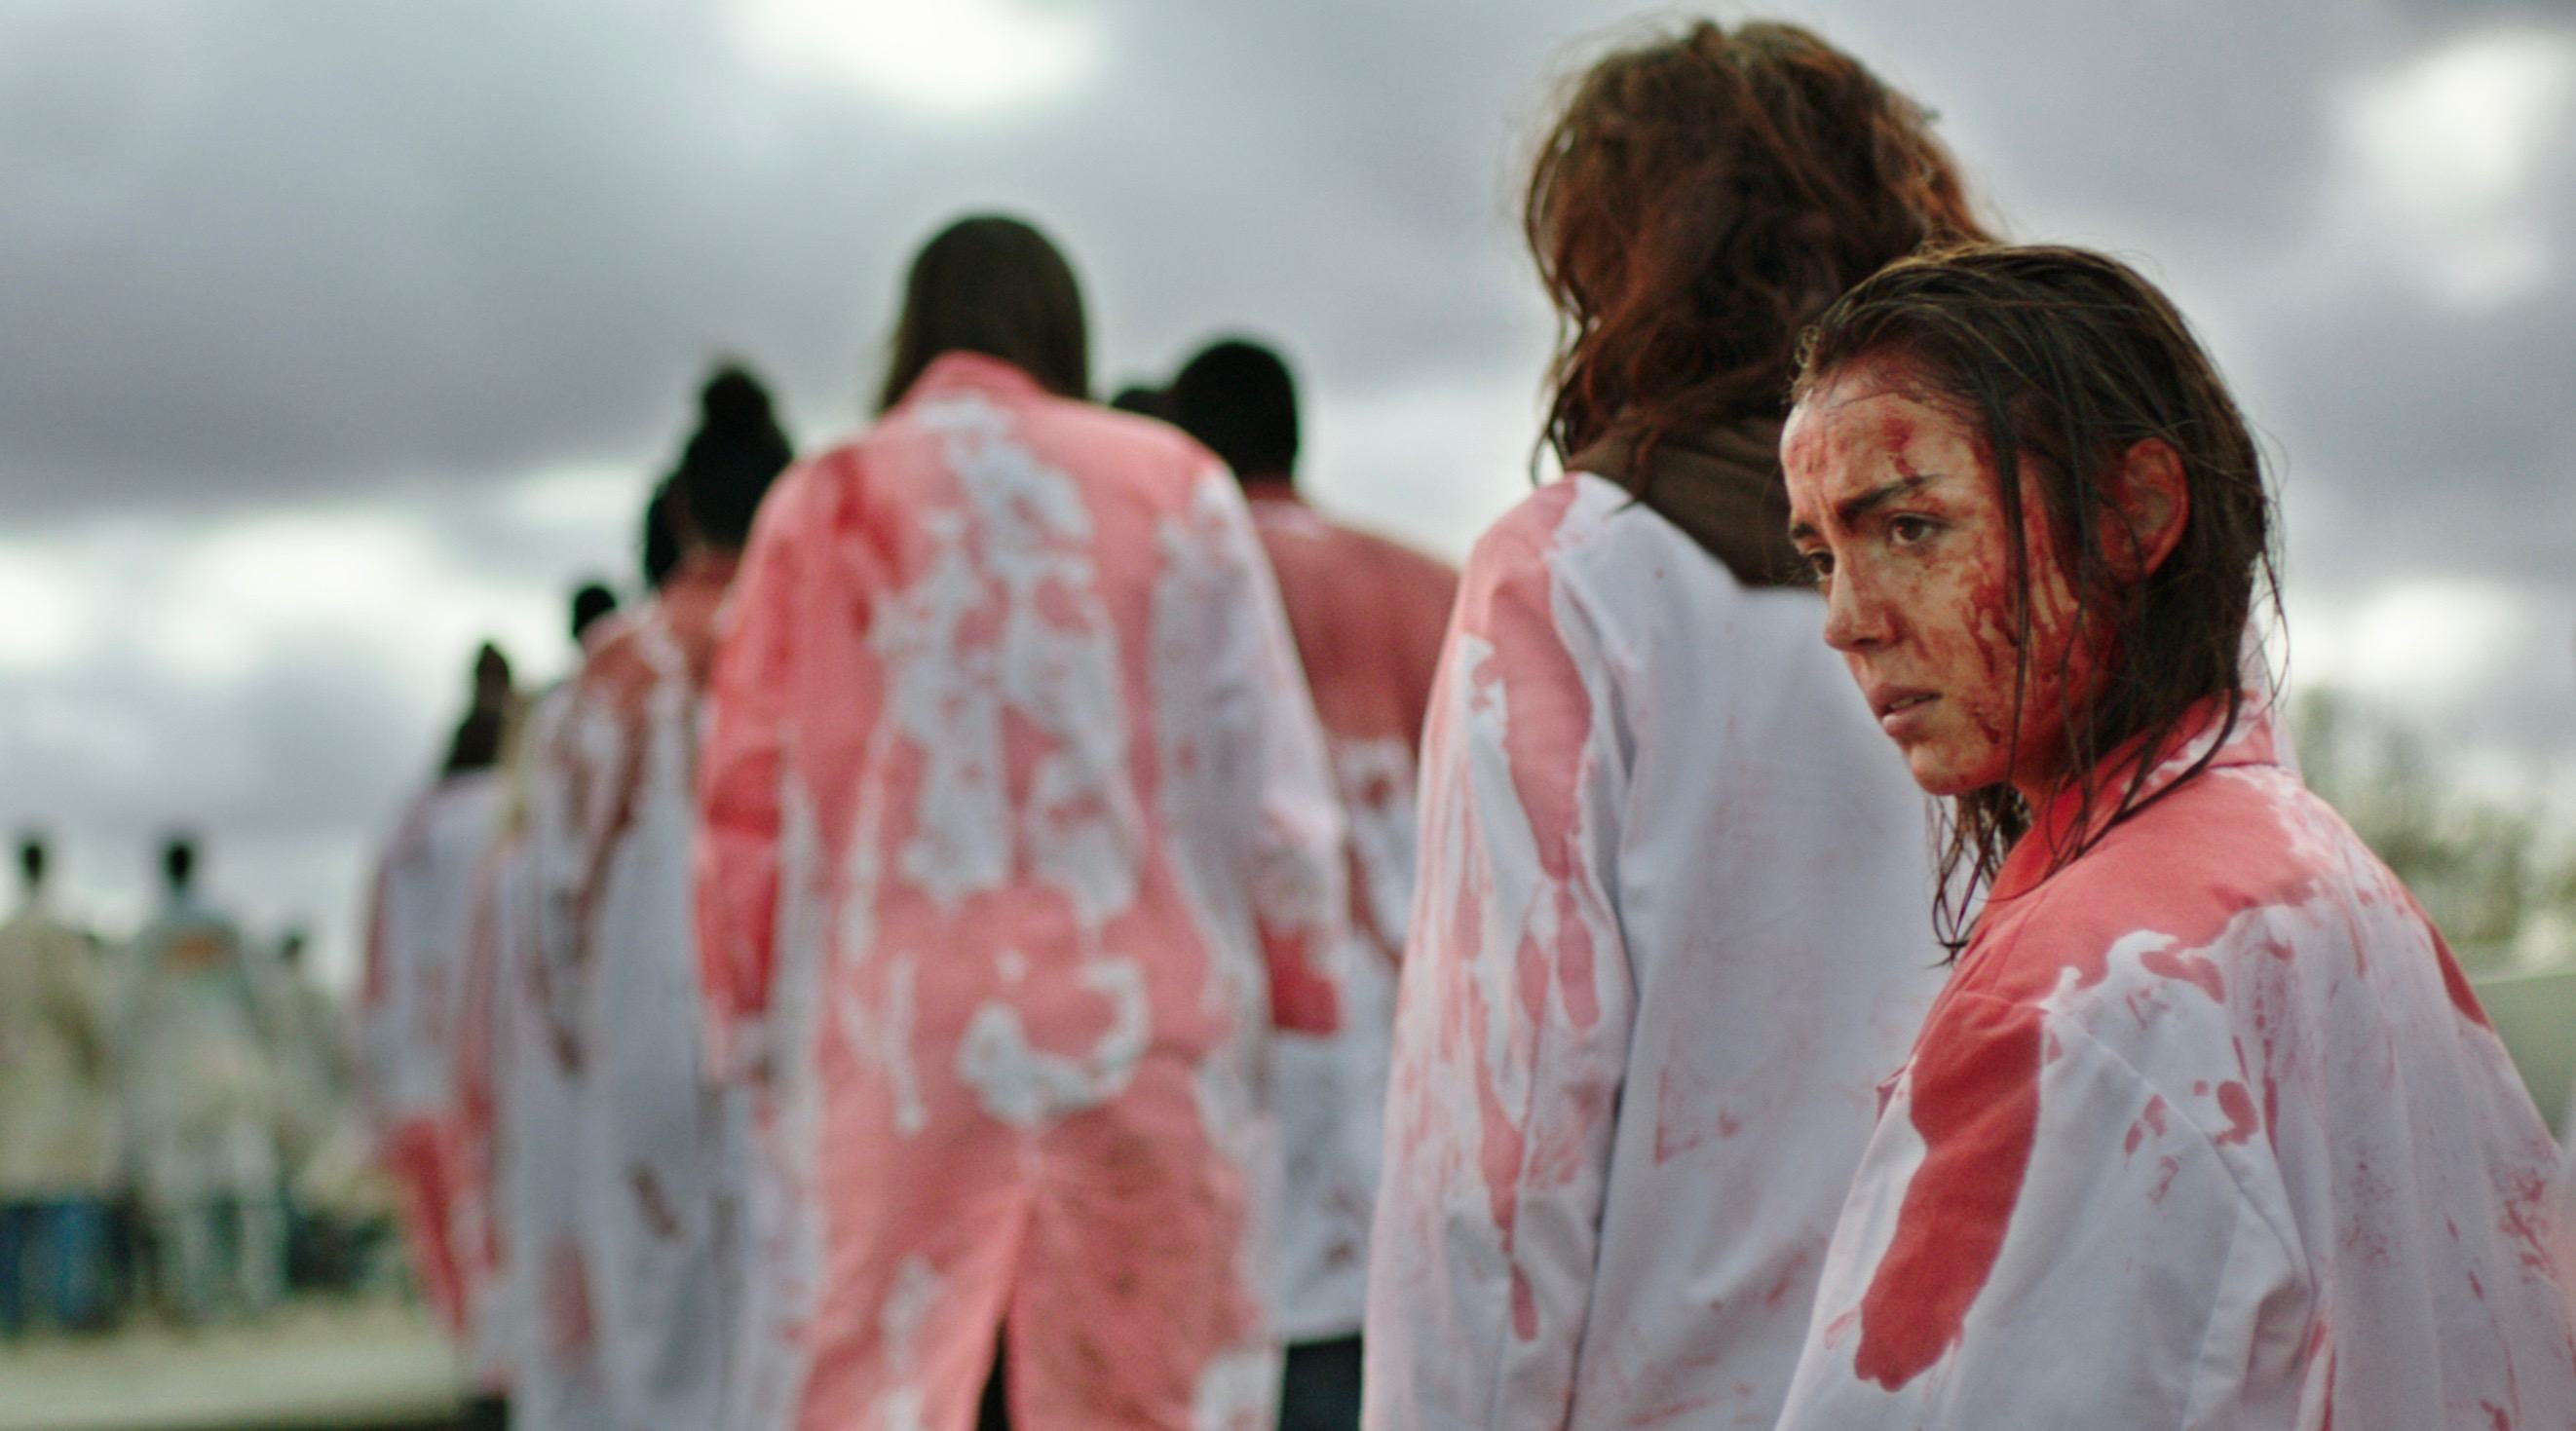 TIFF horror film about cannibalism causes multiple viewers to pass out